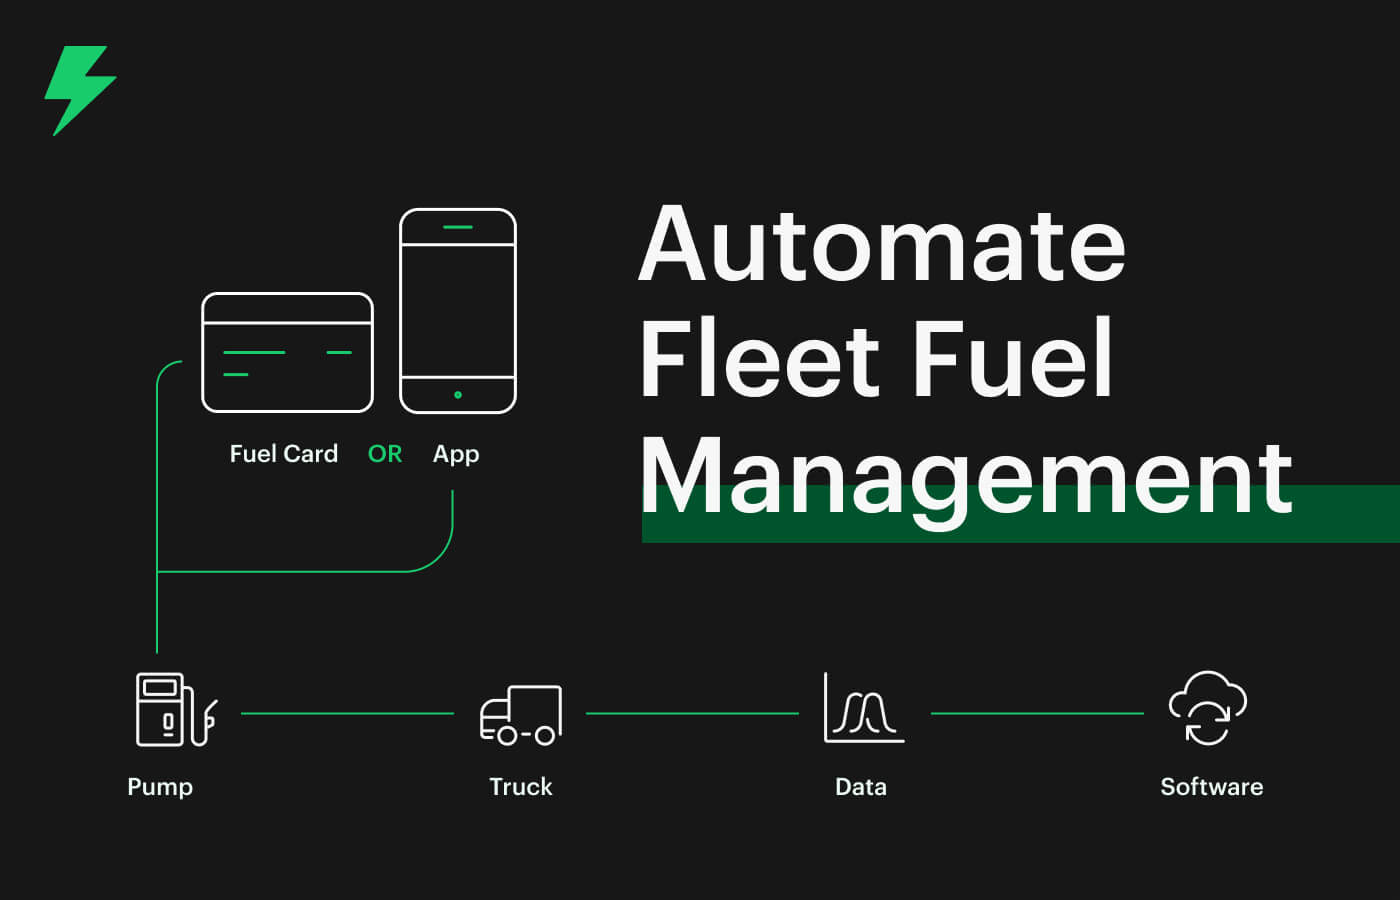 Fleet fuel management